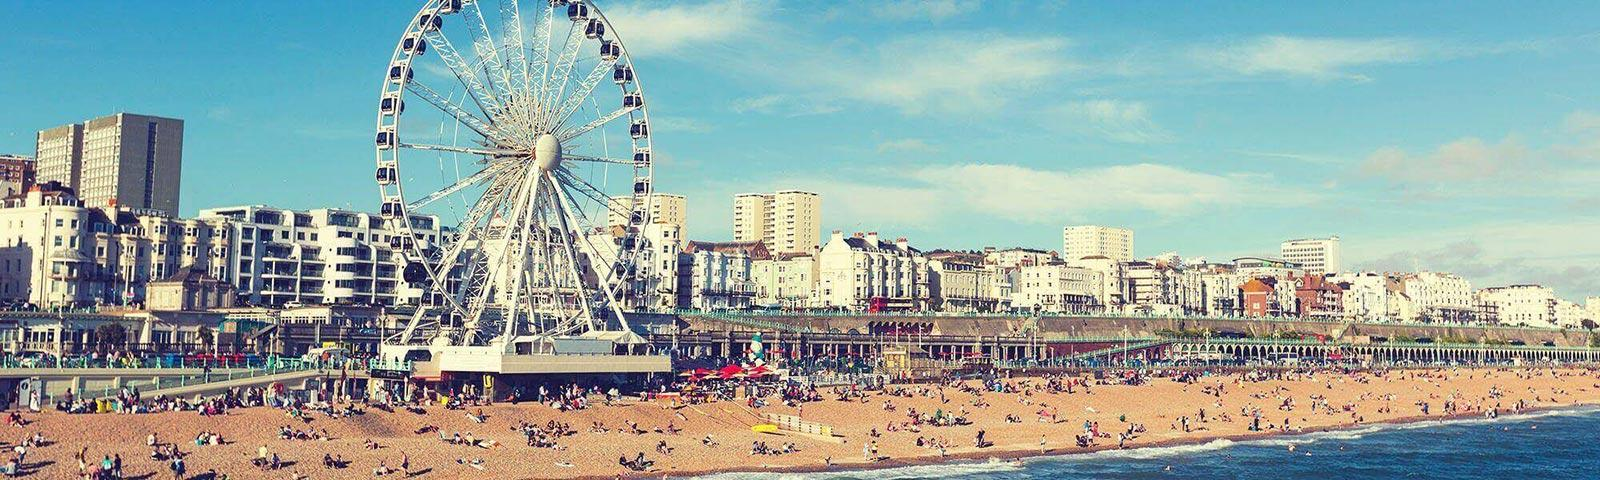 Brighton beach with the large ferris wheel